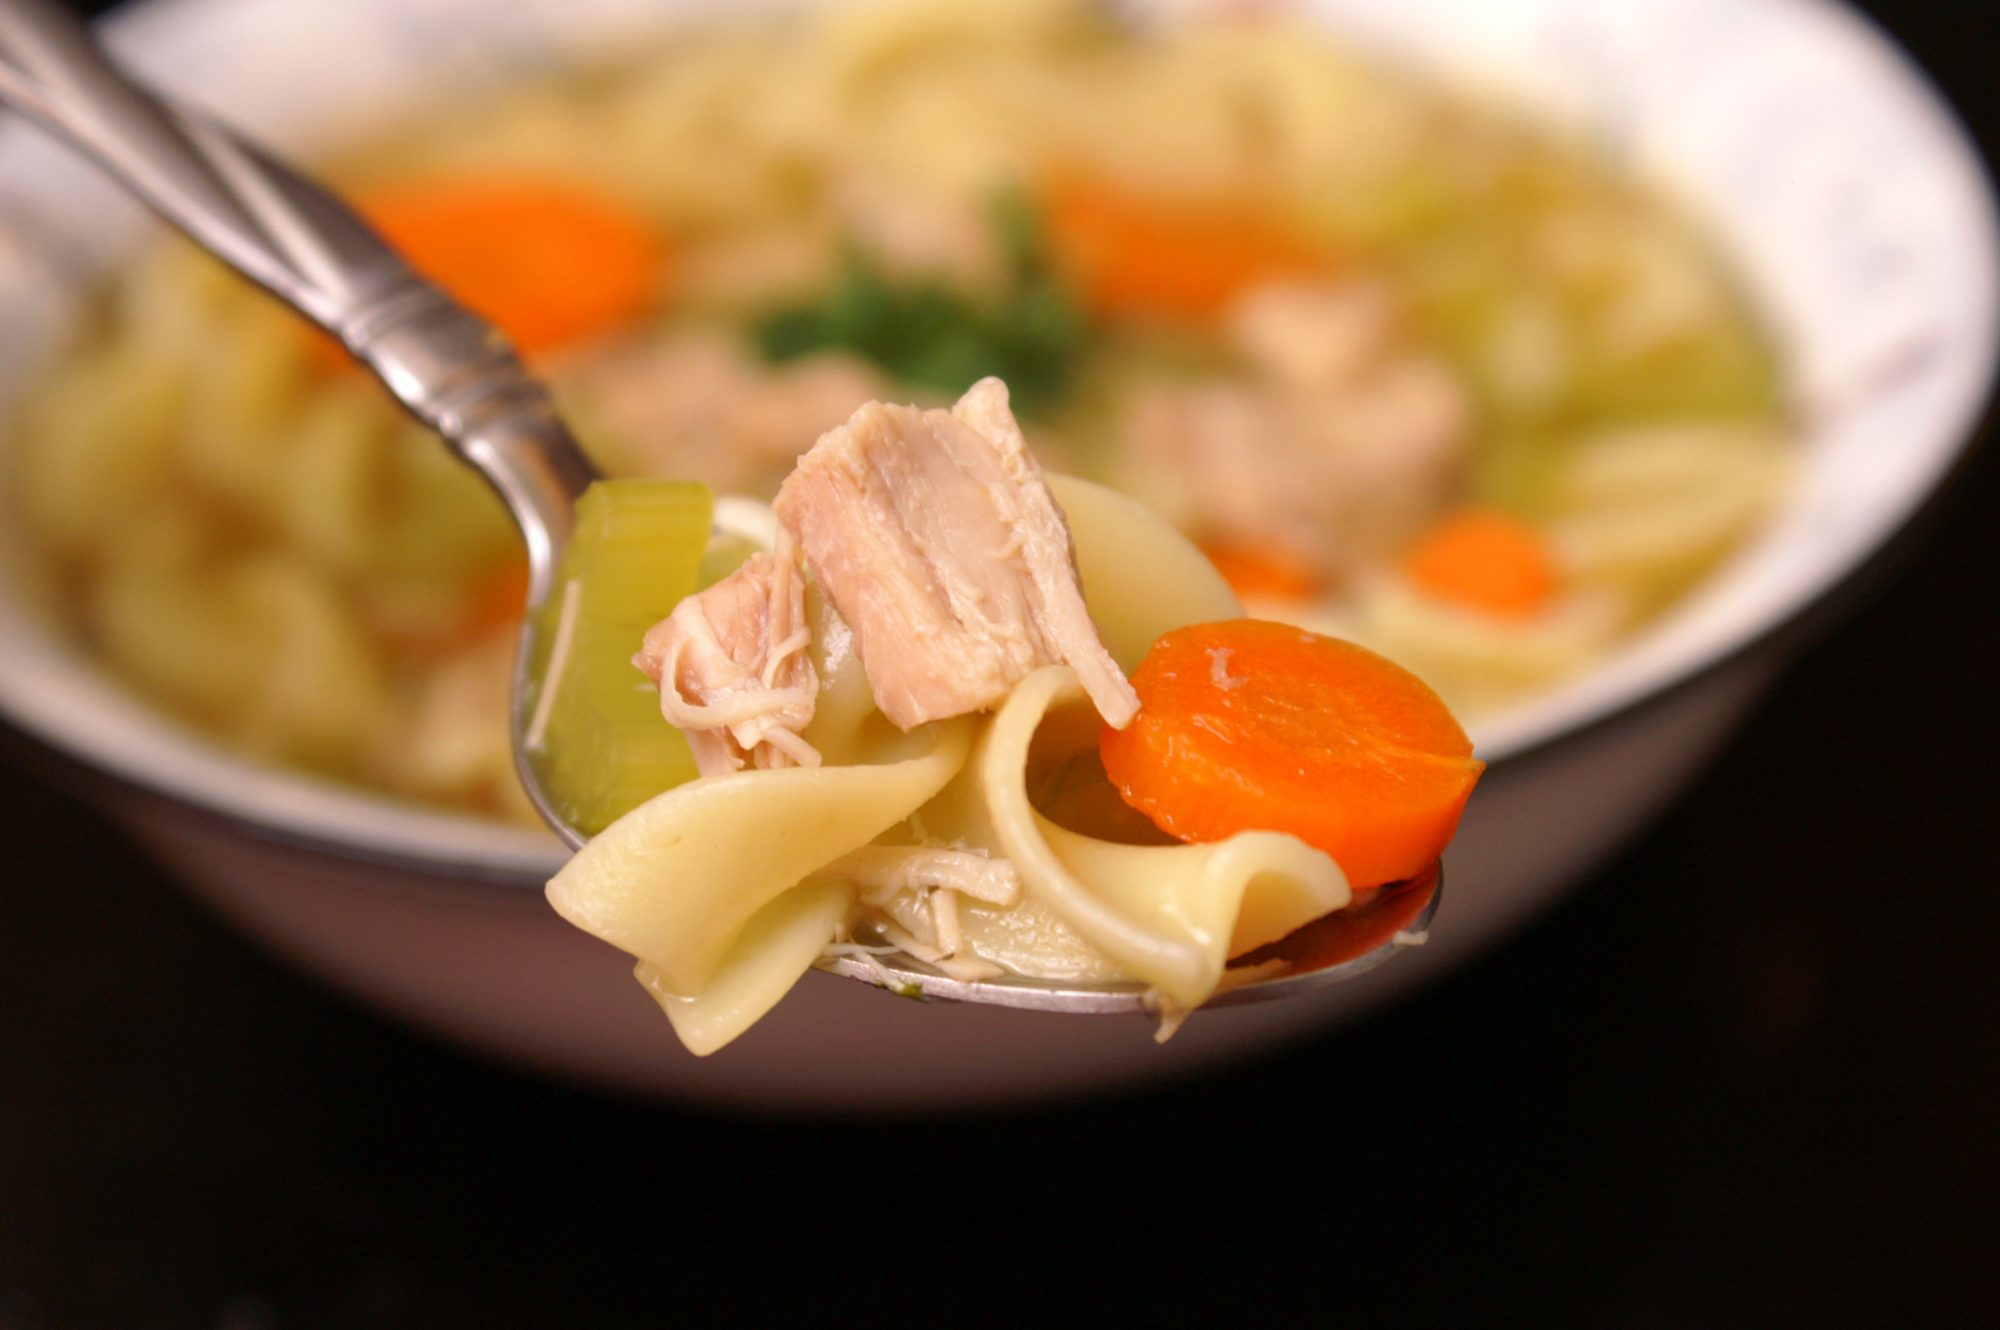 A spoonful of soup with chicken pieces, carrot, and a noodle in the foreground with a bowl of soup behind it